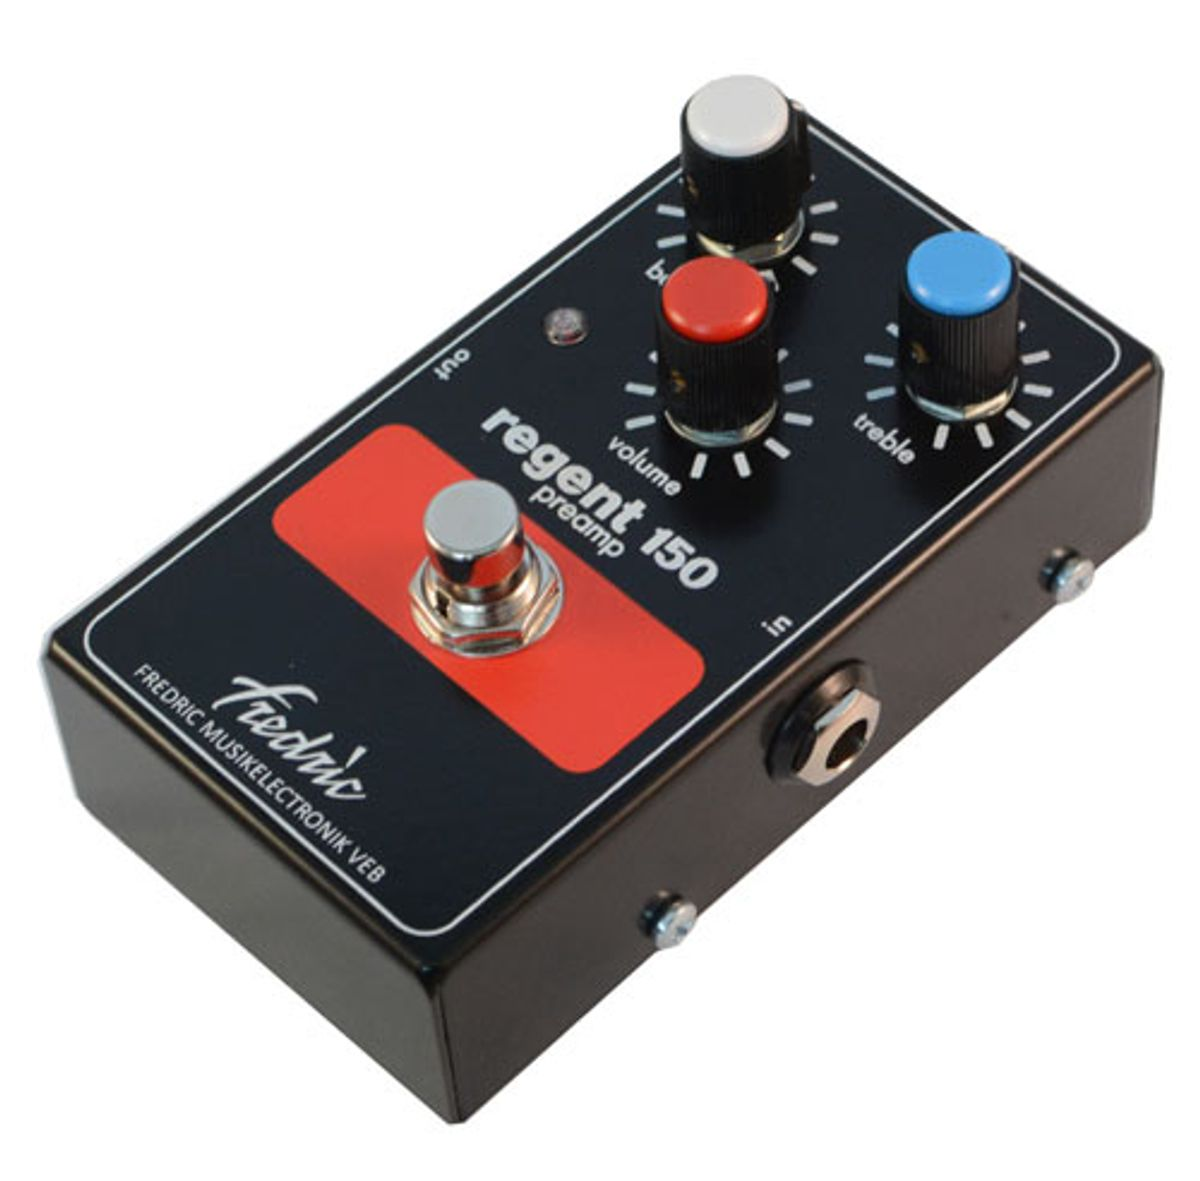 Frederic Effects Announces the Regent 150 Preamp